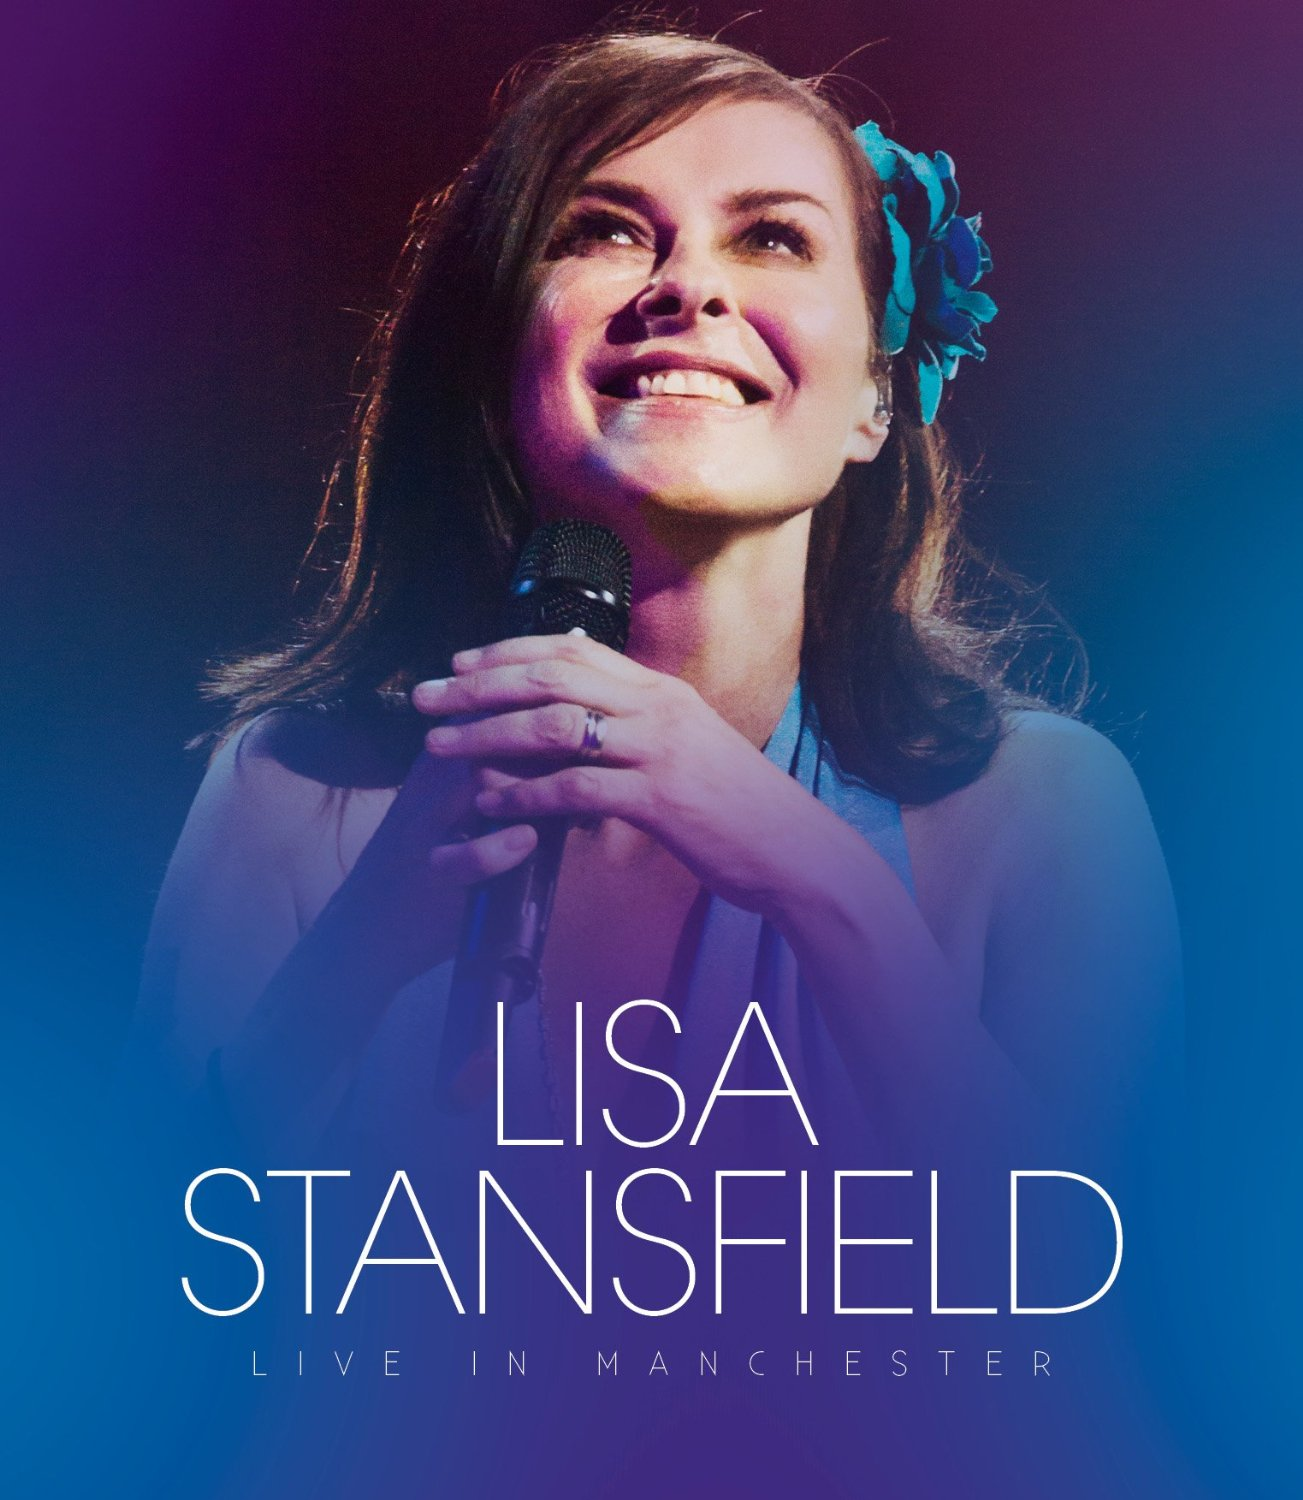 Lisa Stansfield - The Only Way